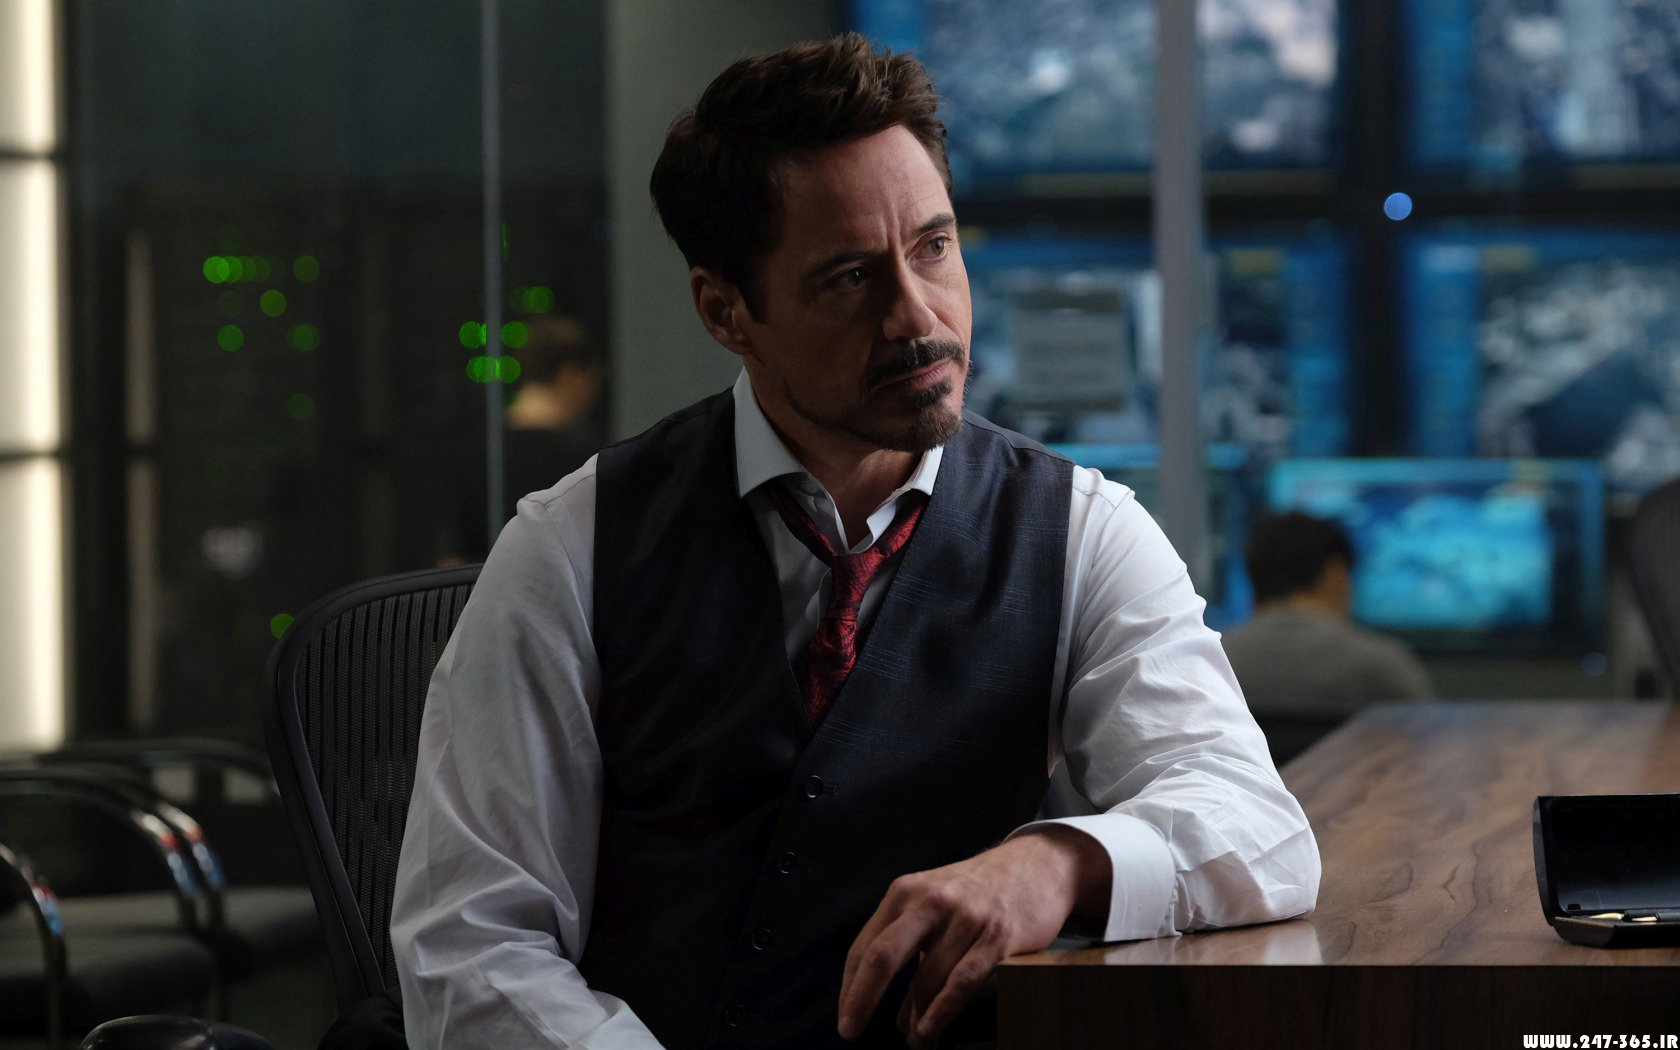 http://dl.247-365.ir/pic/celebrity/robert_downey_jr_3/Robert_Downey_Jr_3_18.jpg